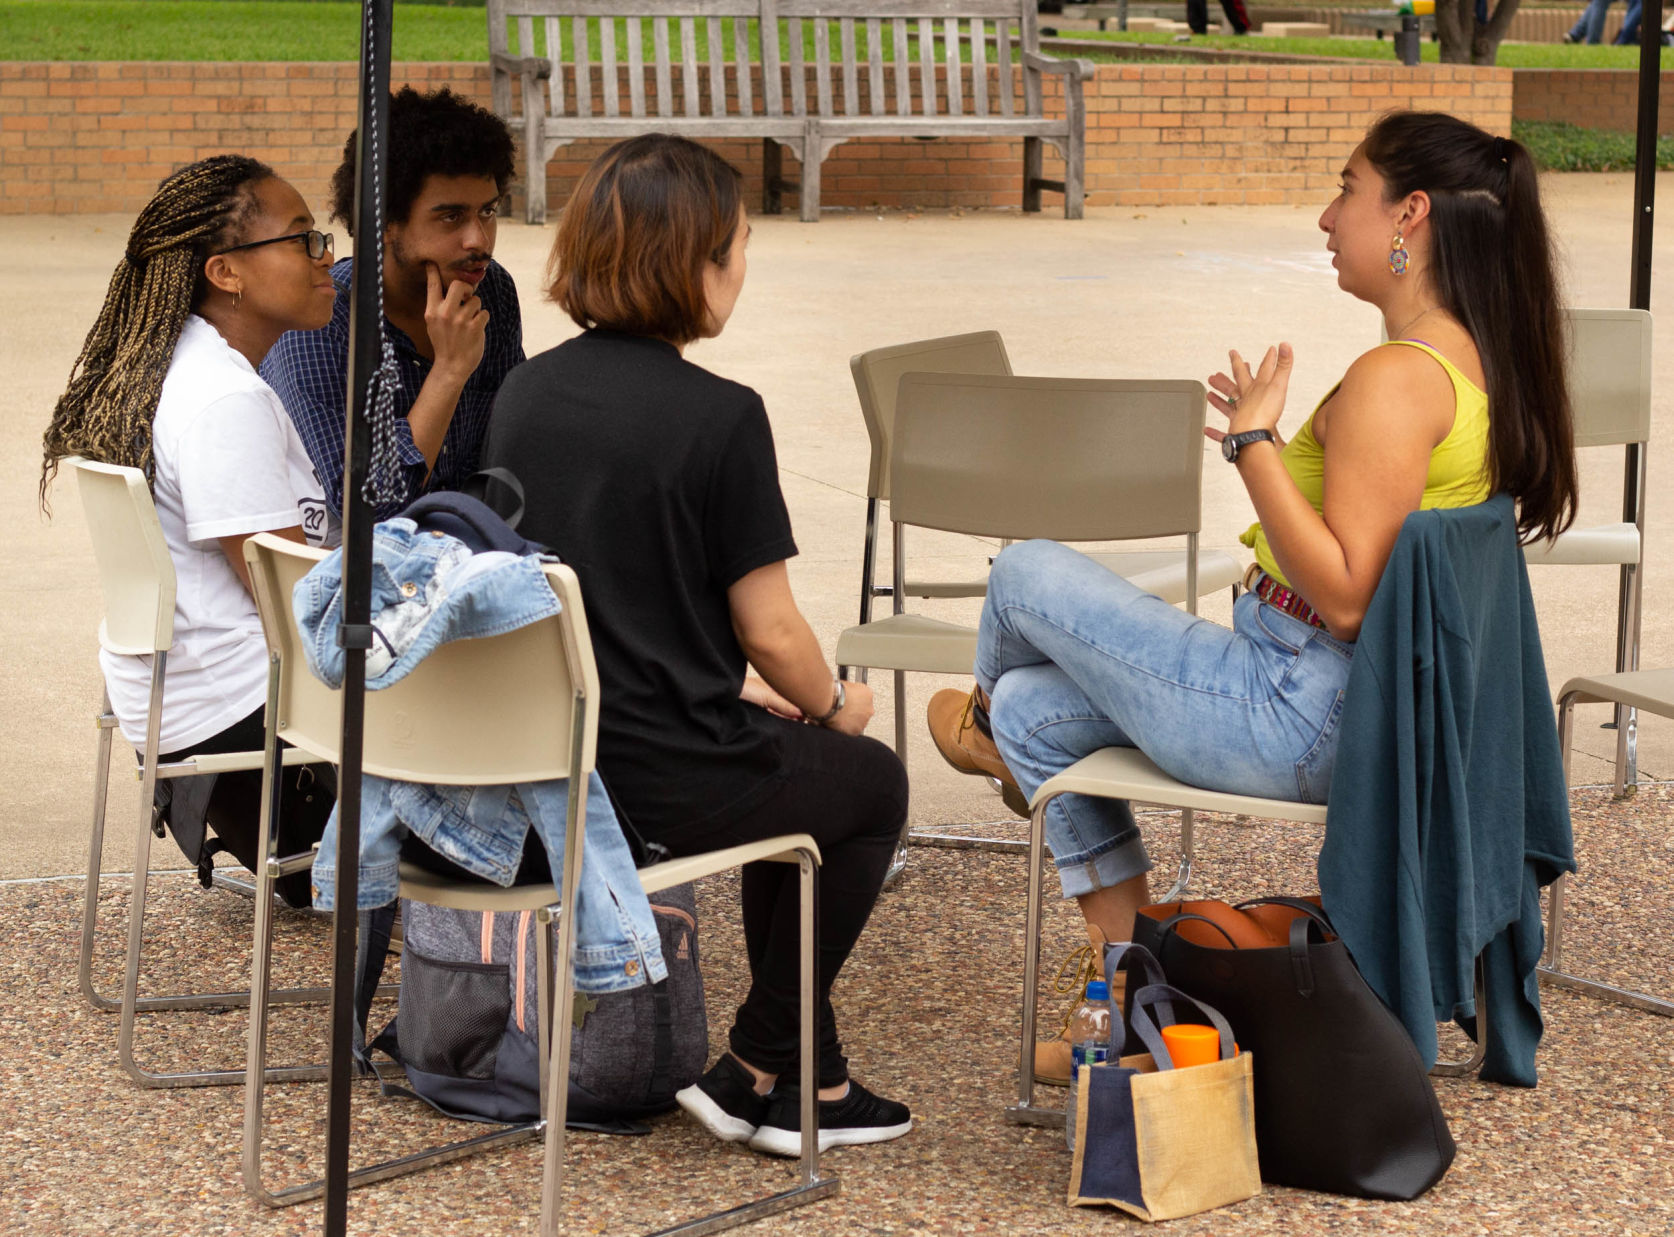 'Nourishment for your heart': UTA Central Library hosts second Human Library event